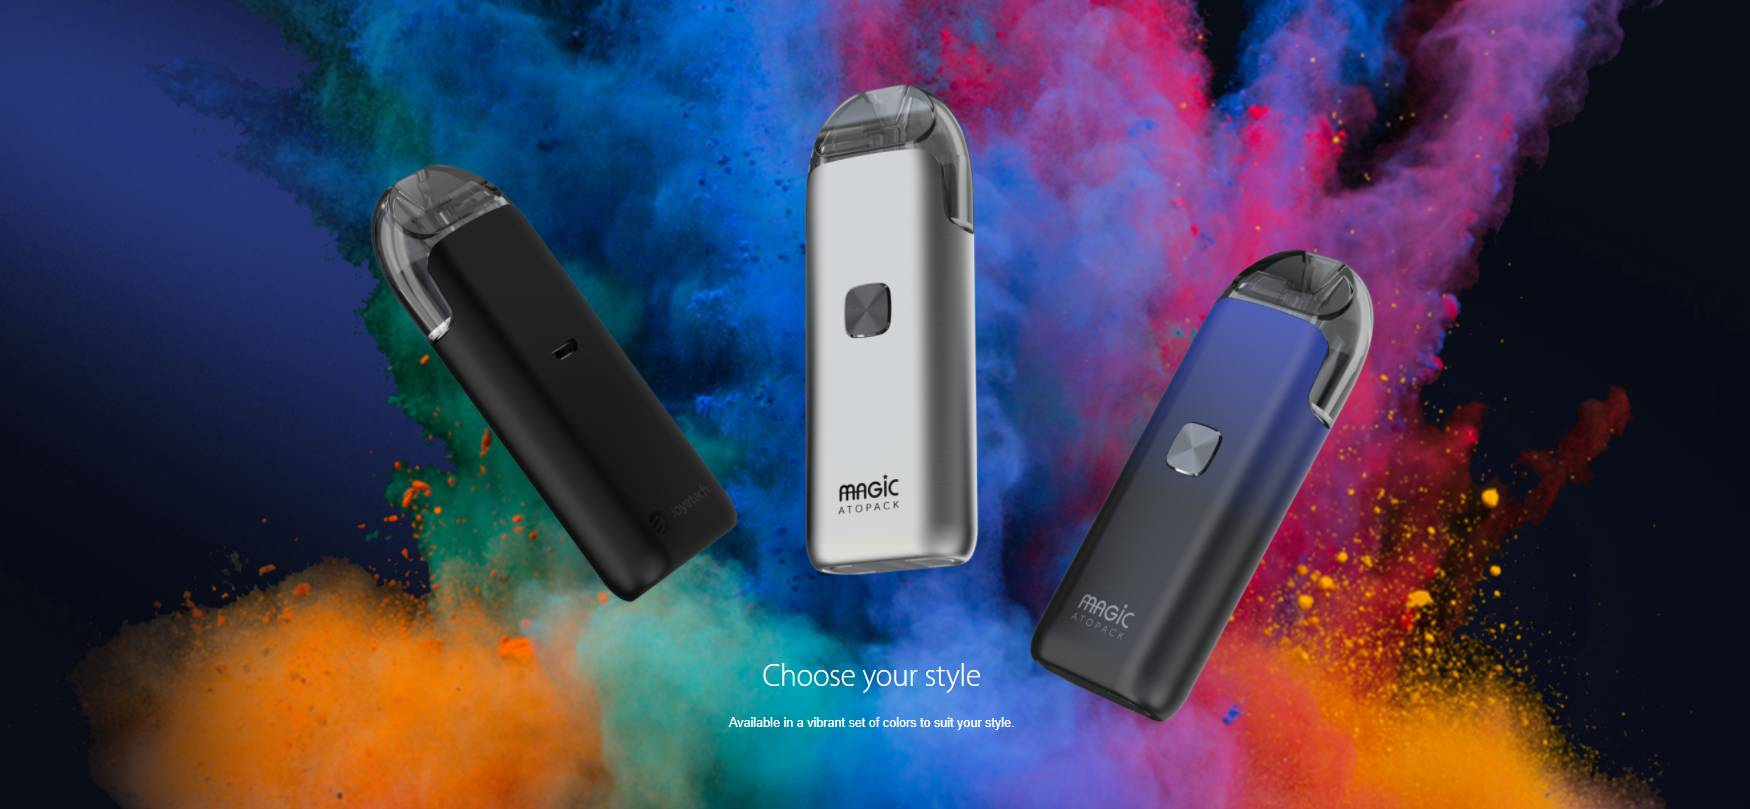 Joyetech Atopack Magic Pod System Kit Review